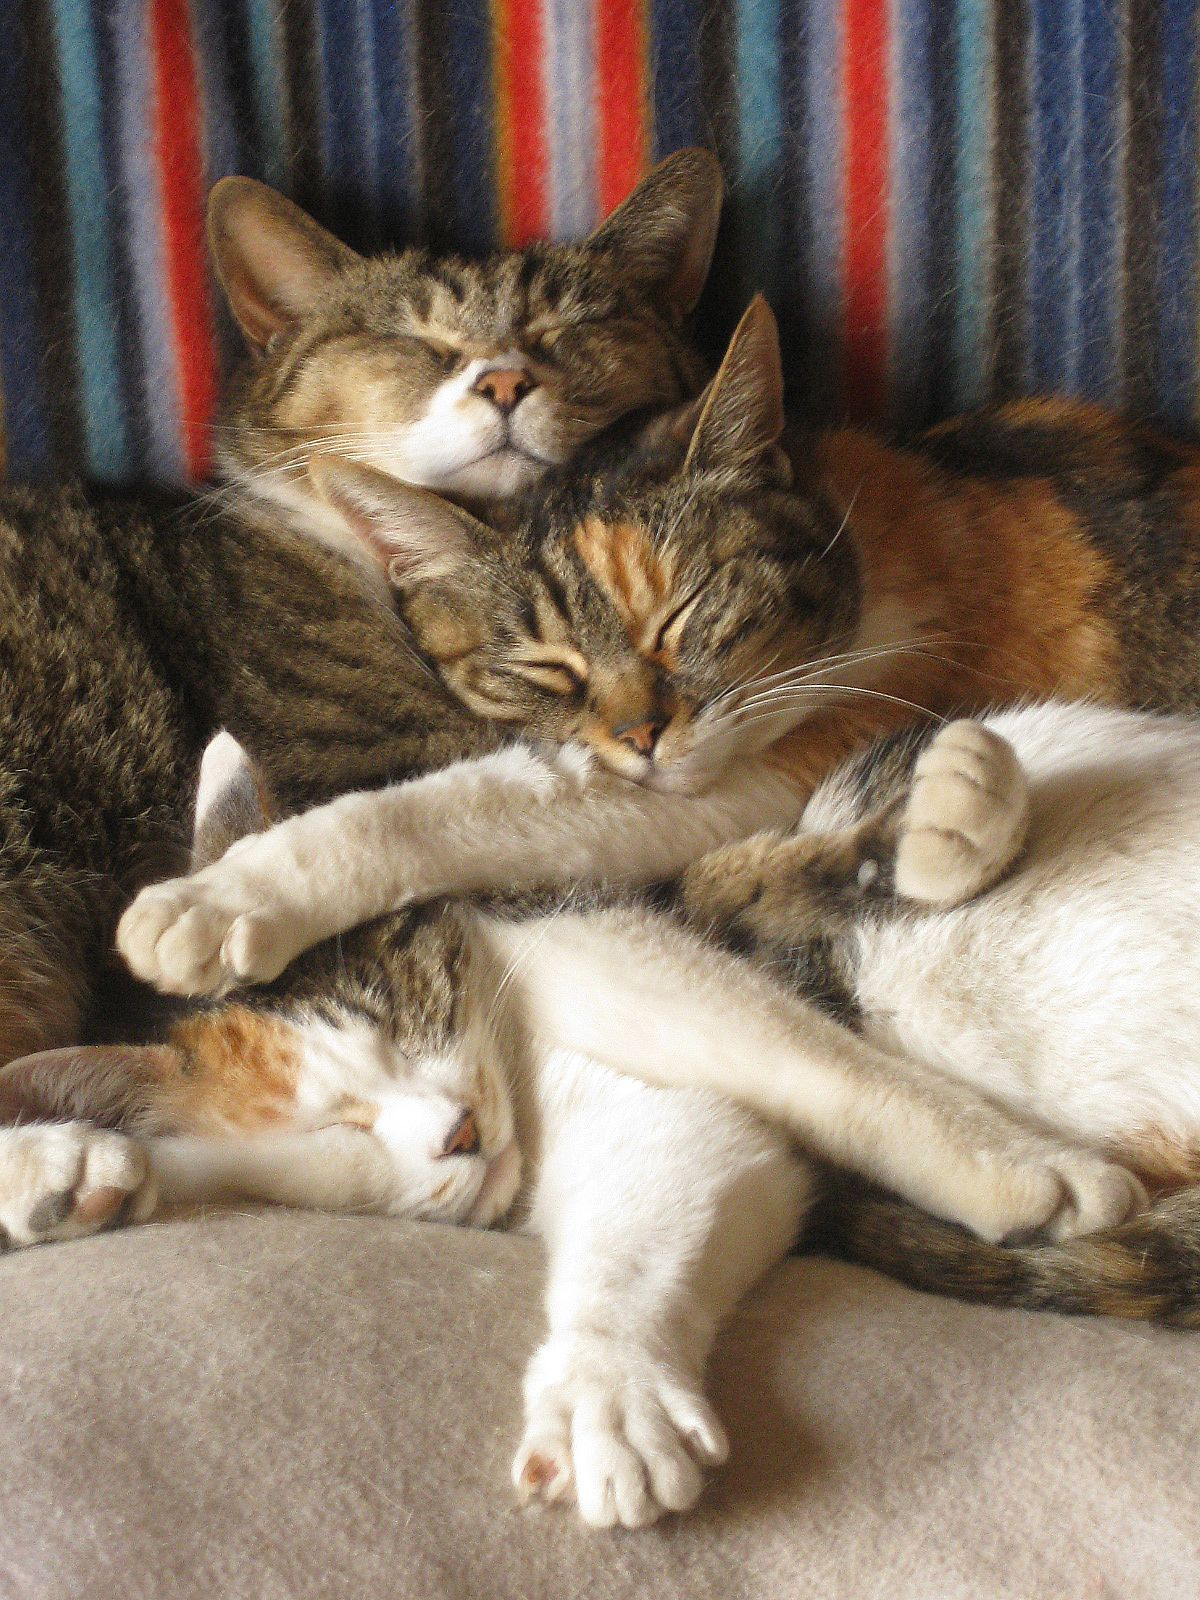 Mostlycatsmostly Via Kabegami Com Cat Sleeping Silly Cats Happy Animals